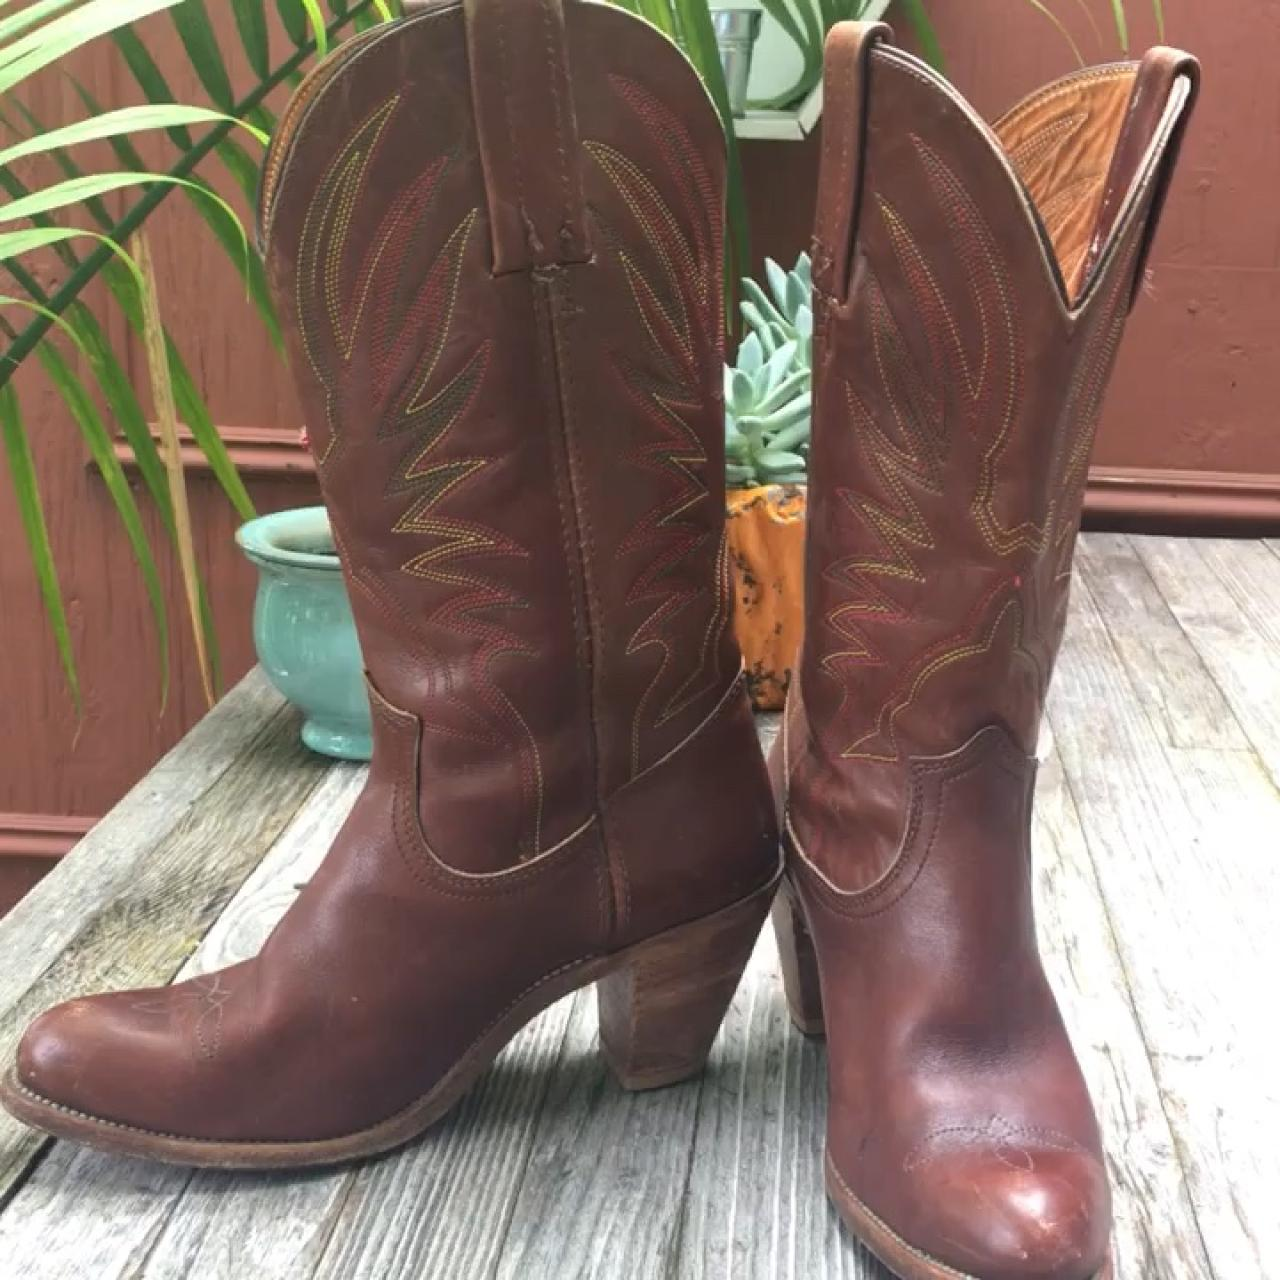 0d26944251f Vintage 1970's FRYE western boots. Made in the USA,... - Depop